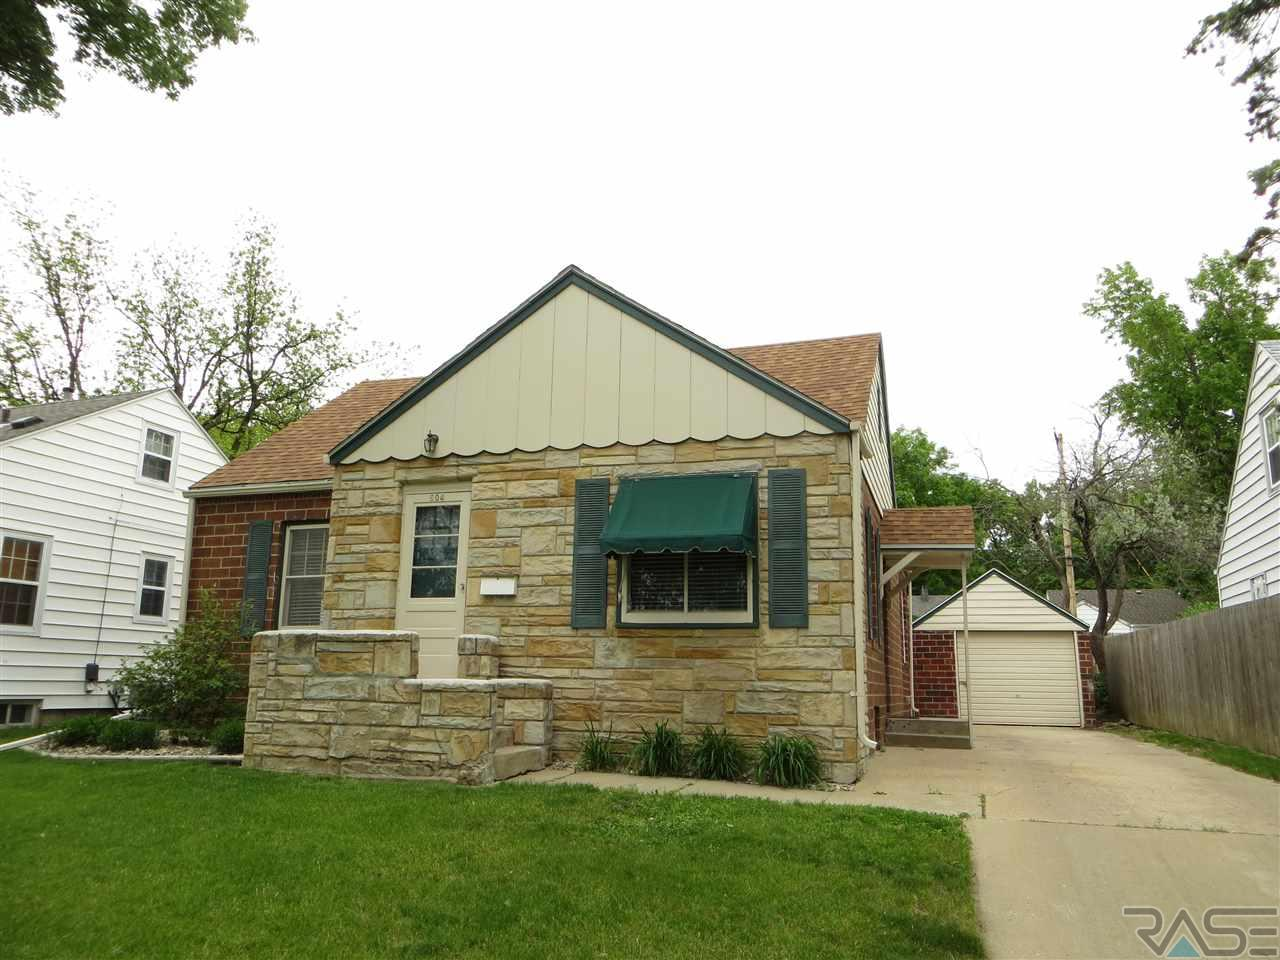 604 S Glendale Ave, SIOUX FALLS